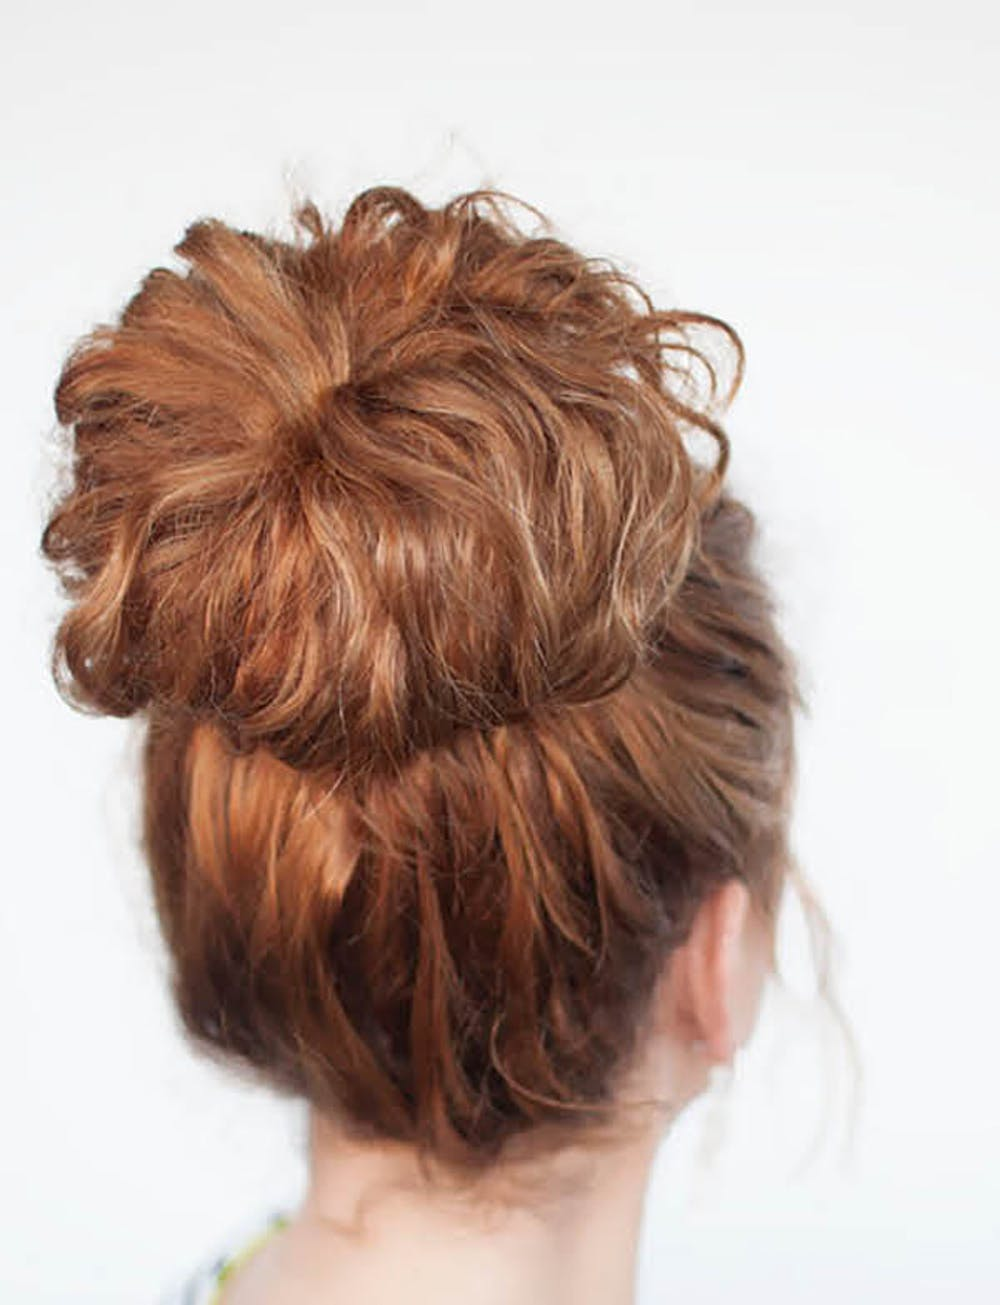 Fancy curly Bun Hairstyle